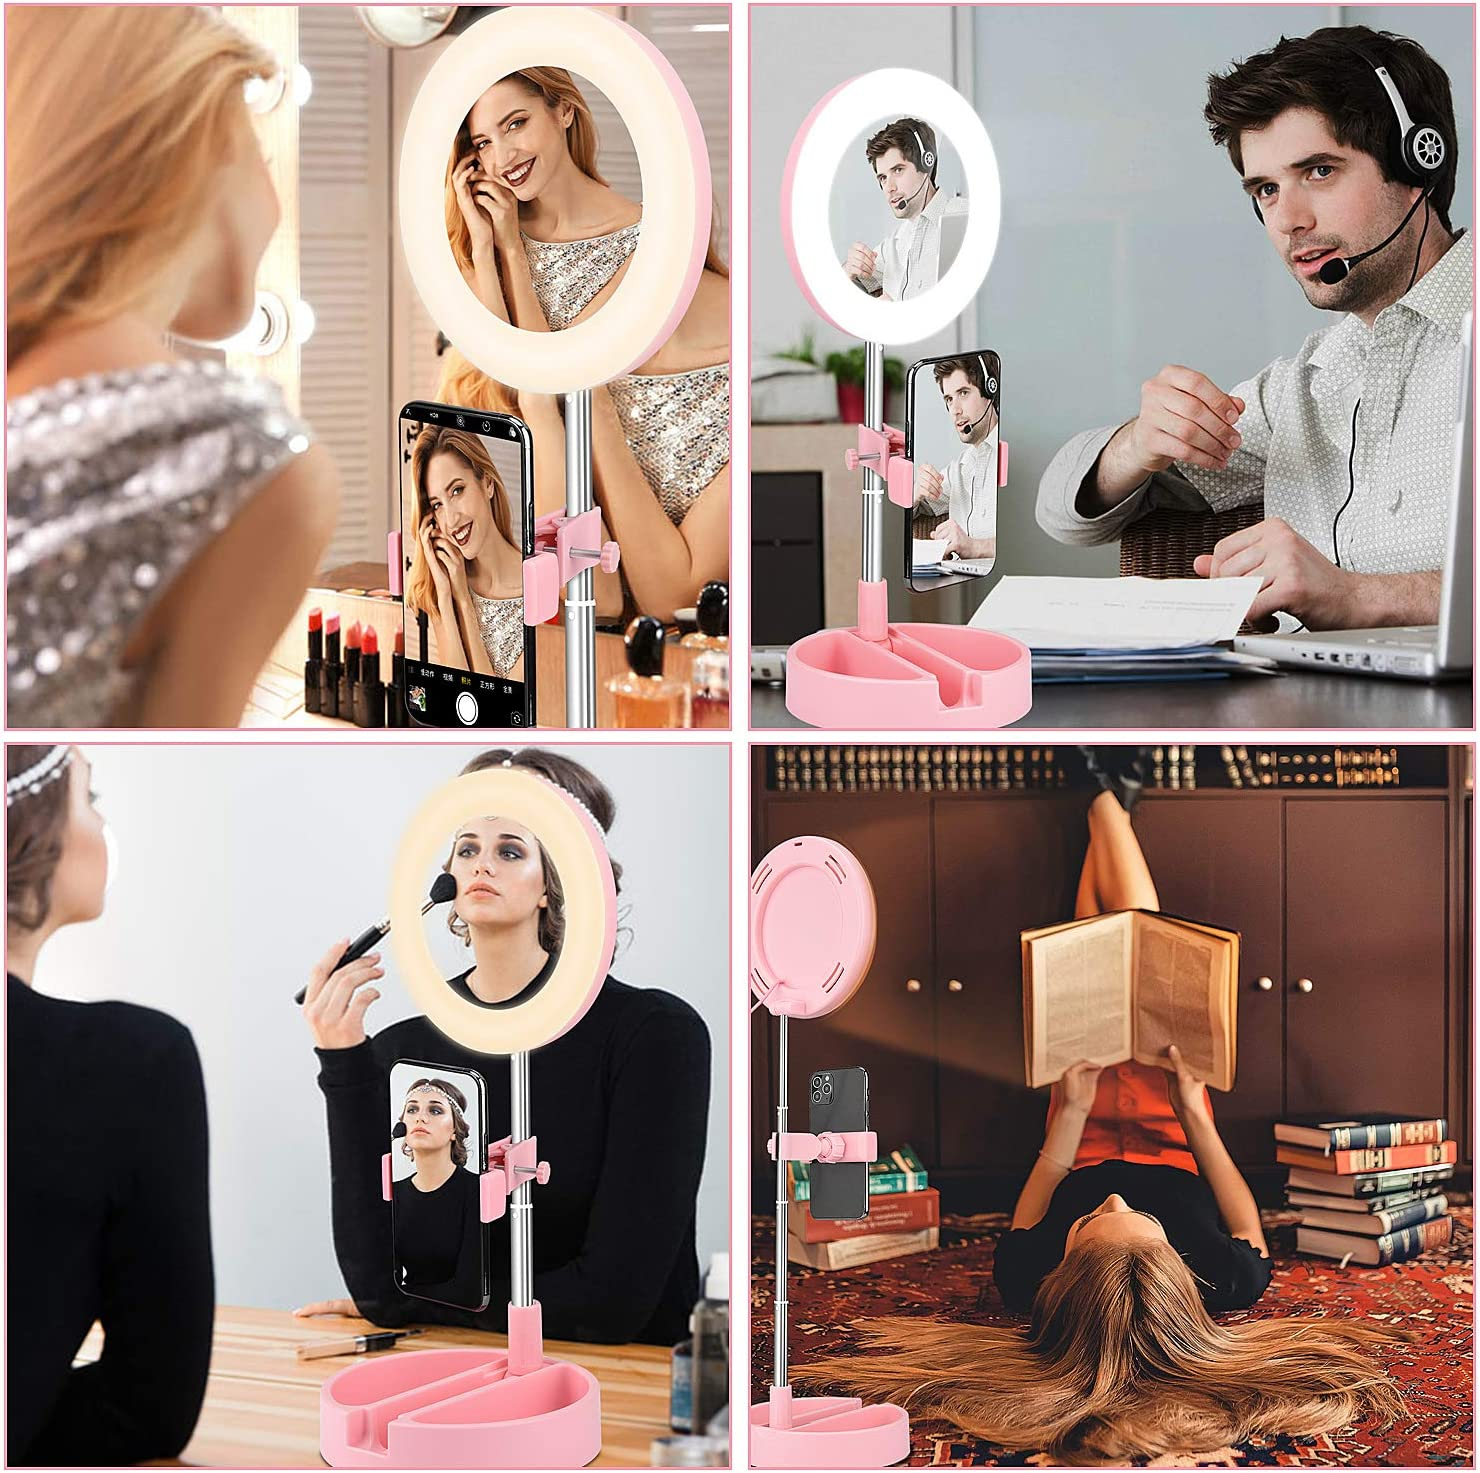 Selfie TikTok Portable LED Circle Light with Foldable Stand White 3 Colors /& 10 Brightness Desktop Ring Lamp for Makeup 6.3 Inch Ring Light with Makeup Mirror and Phone Holder YouTube Video